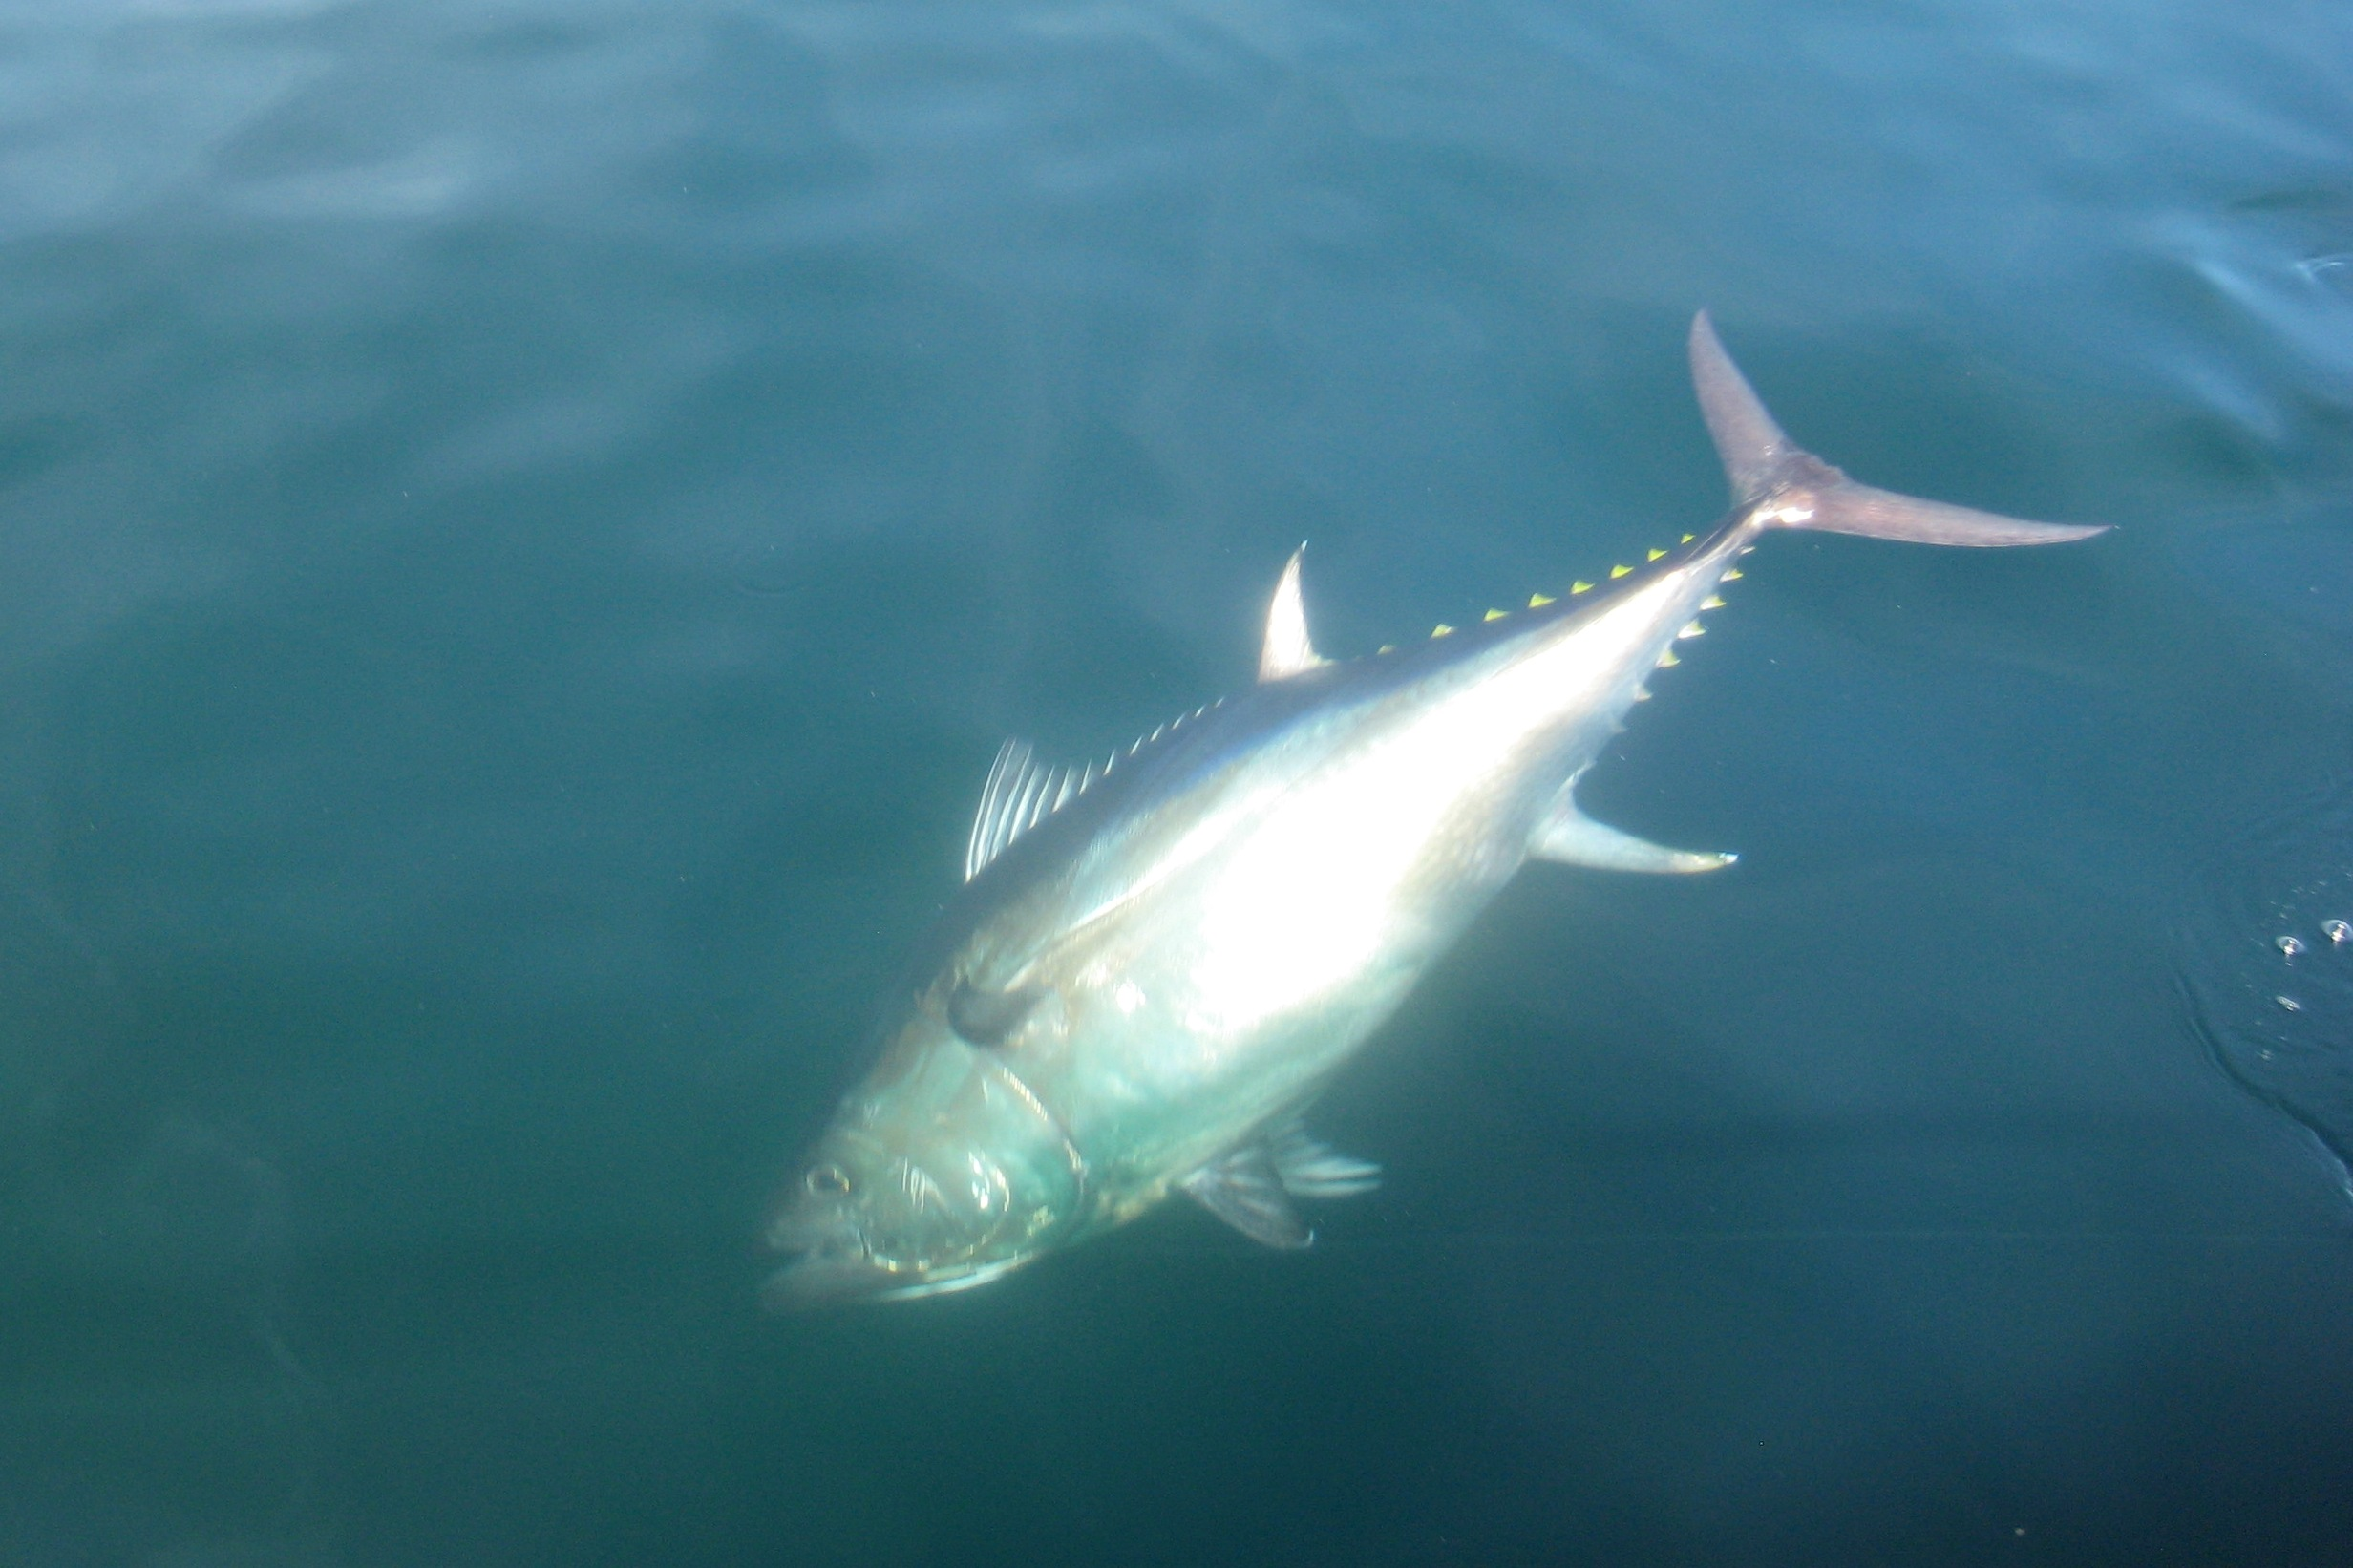 Cape cod kite fishing for giant tuna for Kite fishing for tuna